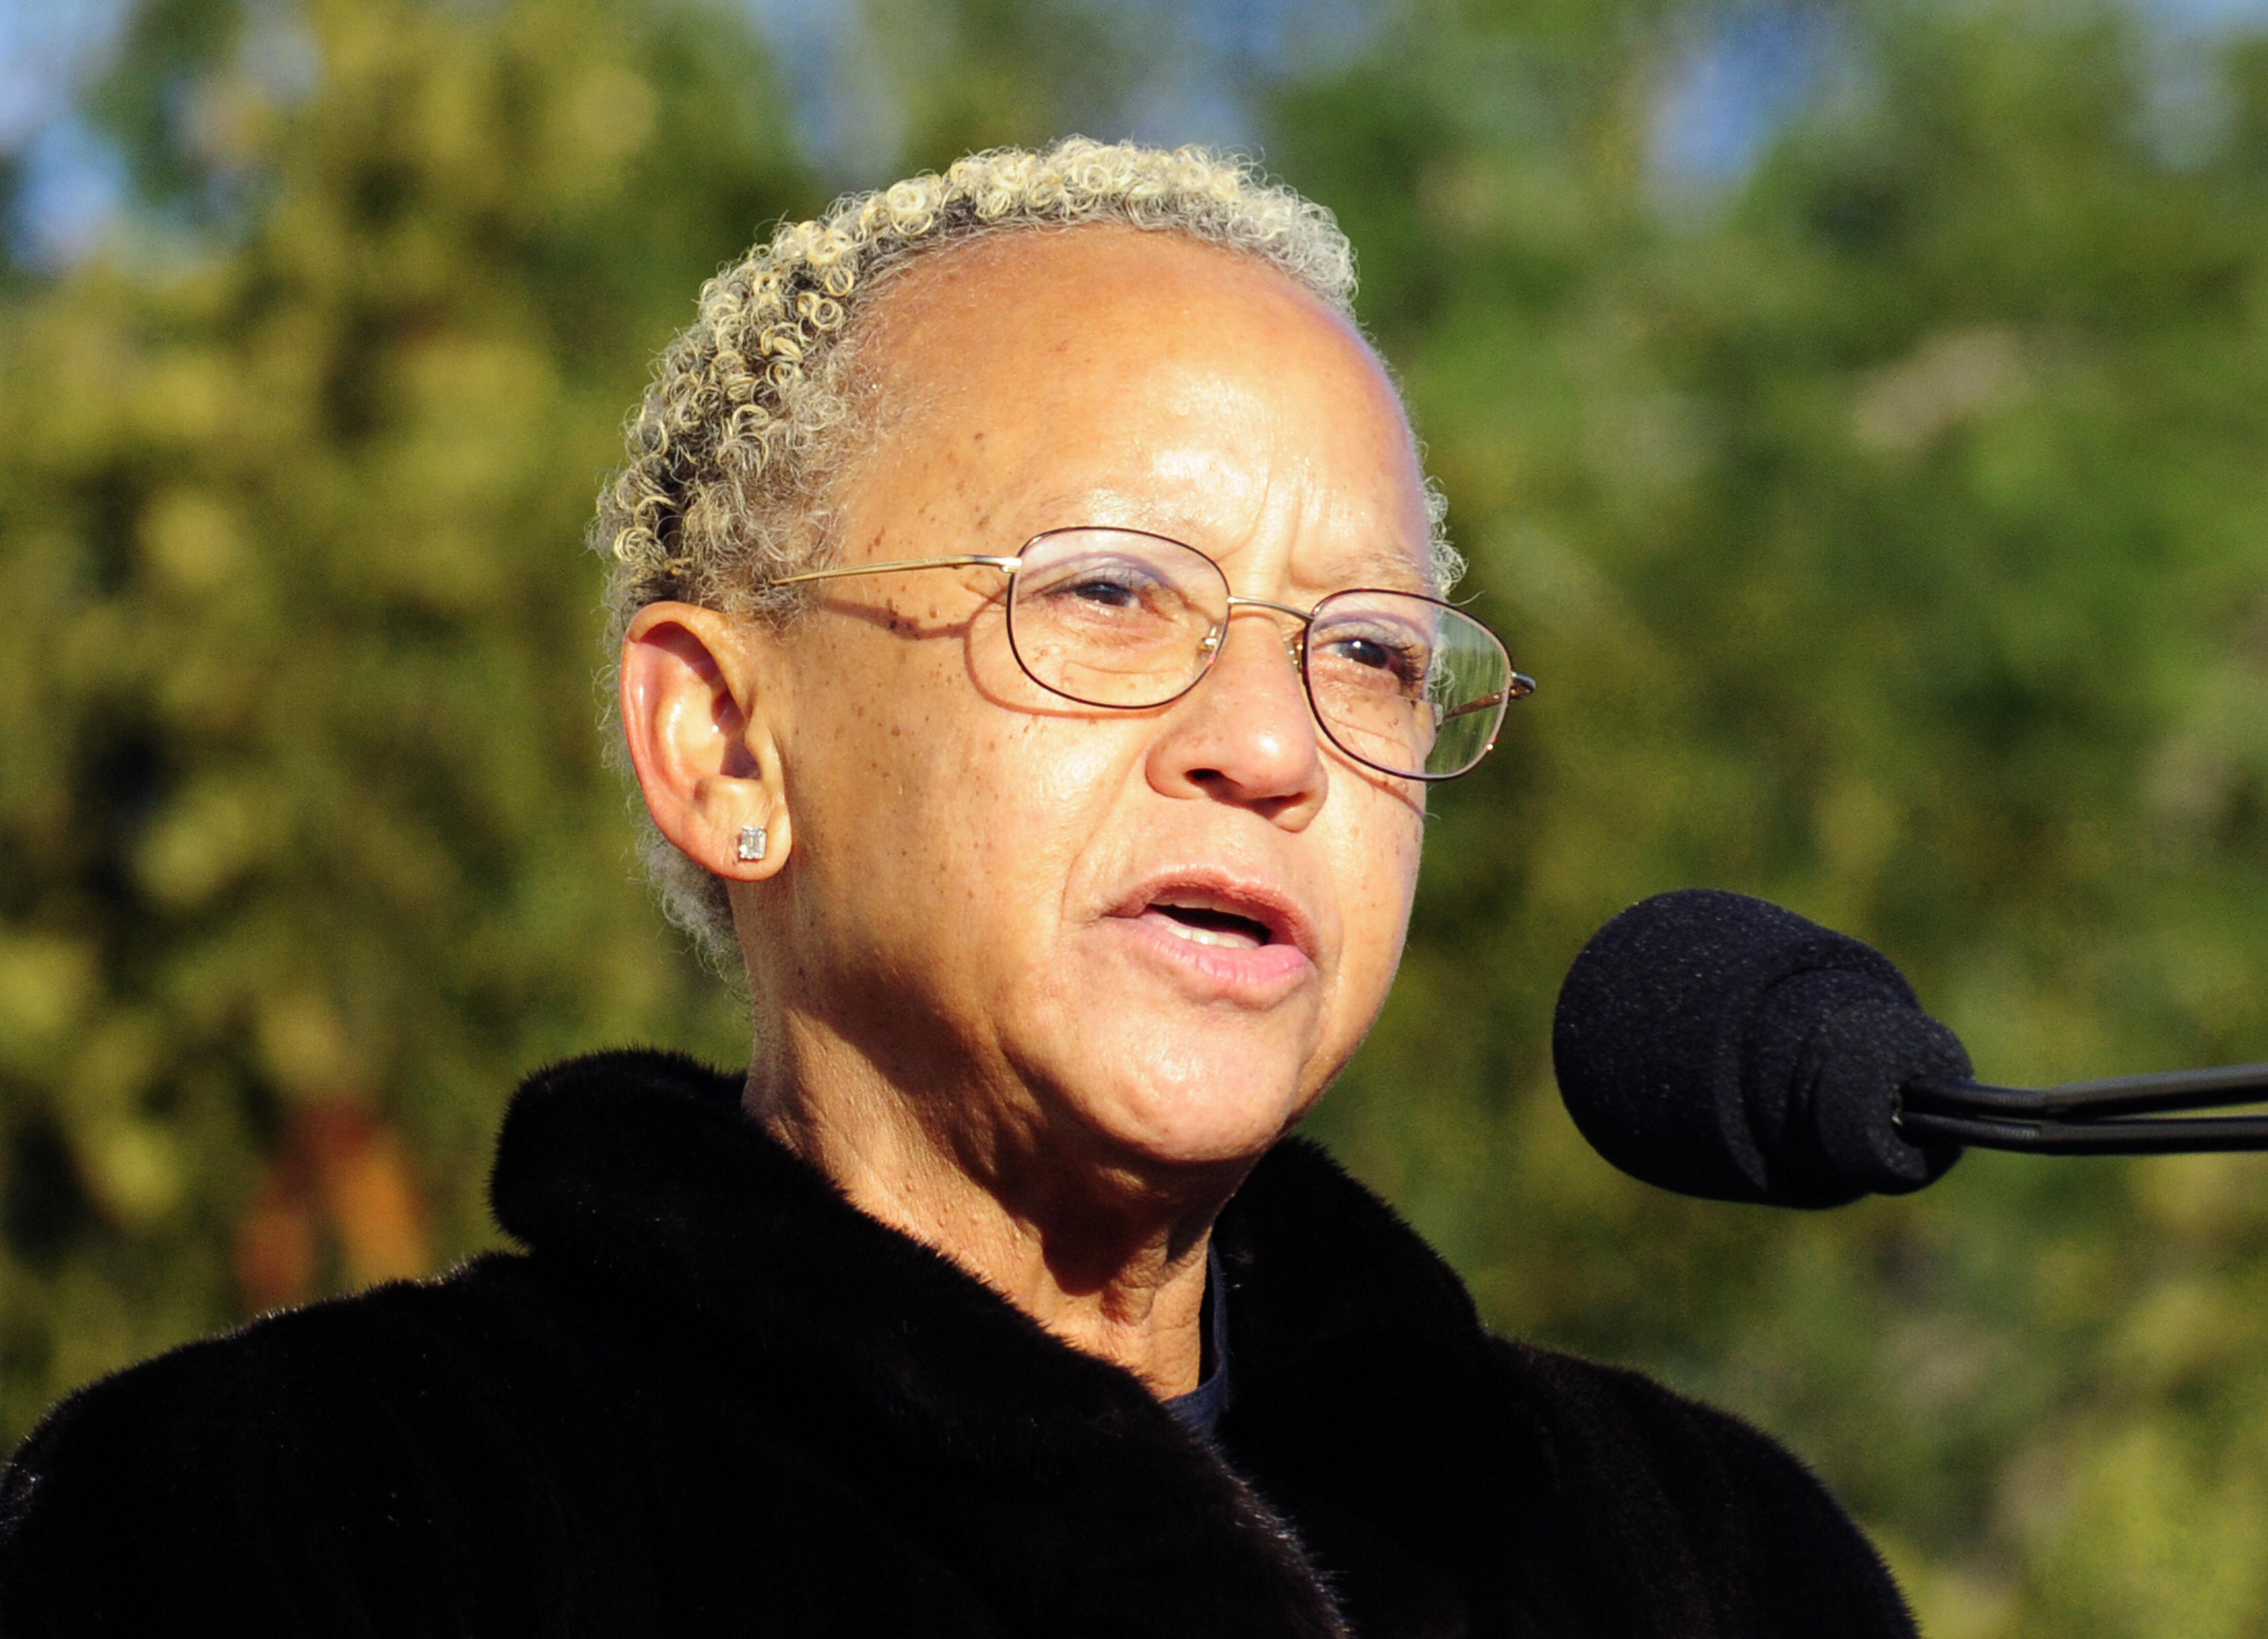 Dr. Nikki Giovanni reads a poem during ceremonies at the Lincoln Memorial in Washington, DC on February 12, 2009.